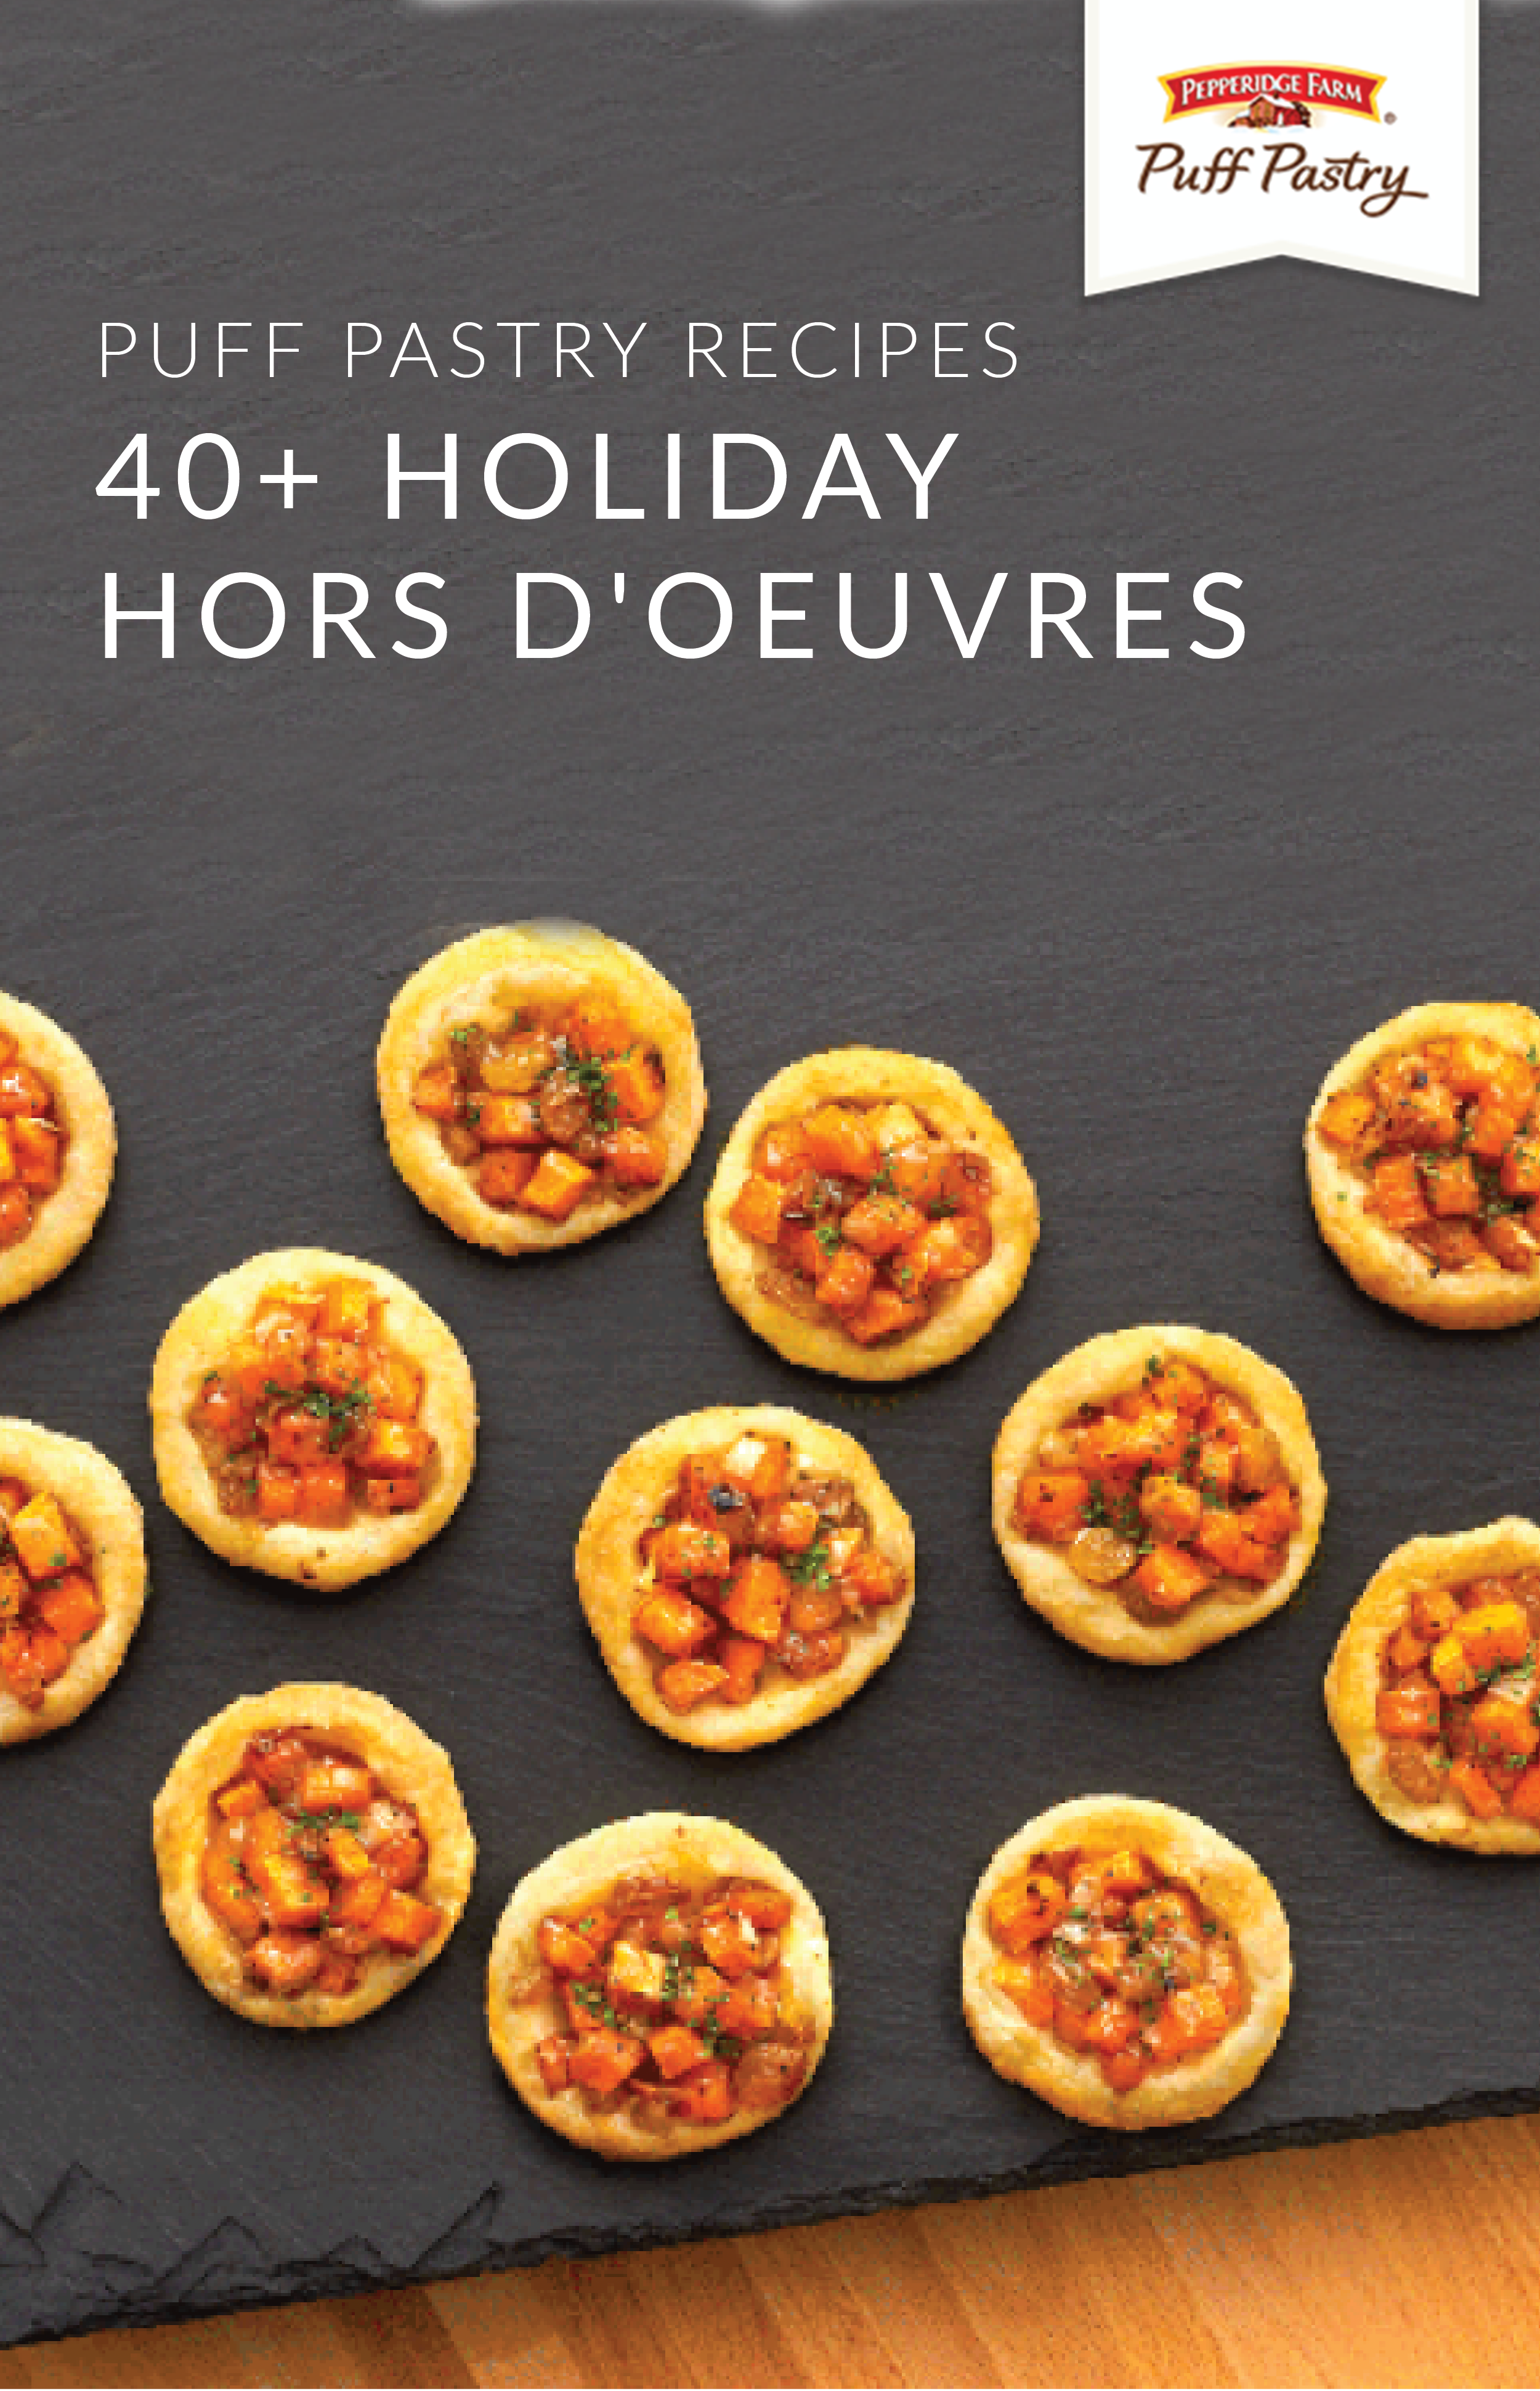 The best part of this collection of 40 holiday hors doeuvres is the best part of this collection of 40 holiday hors doeuvres is that they use flaky pepperidge farm puff pastry sheets in each recipemeaning every bite forumfinder Image collections